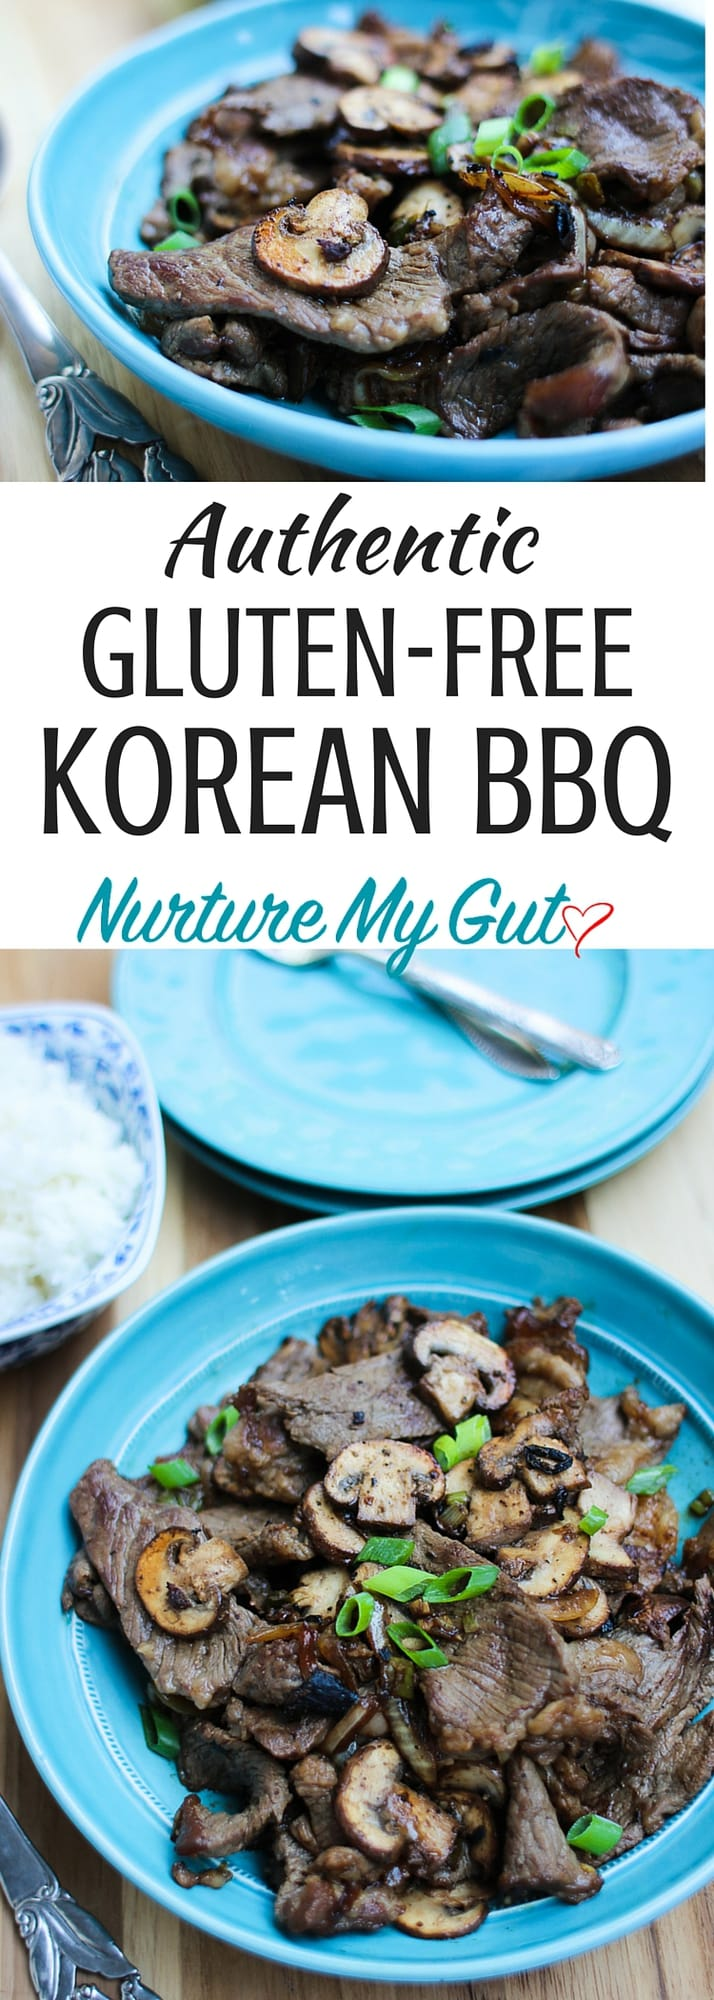 AUTHENTIC GLUTEN FREE KOREAN BBQ